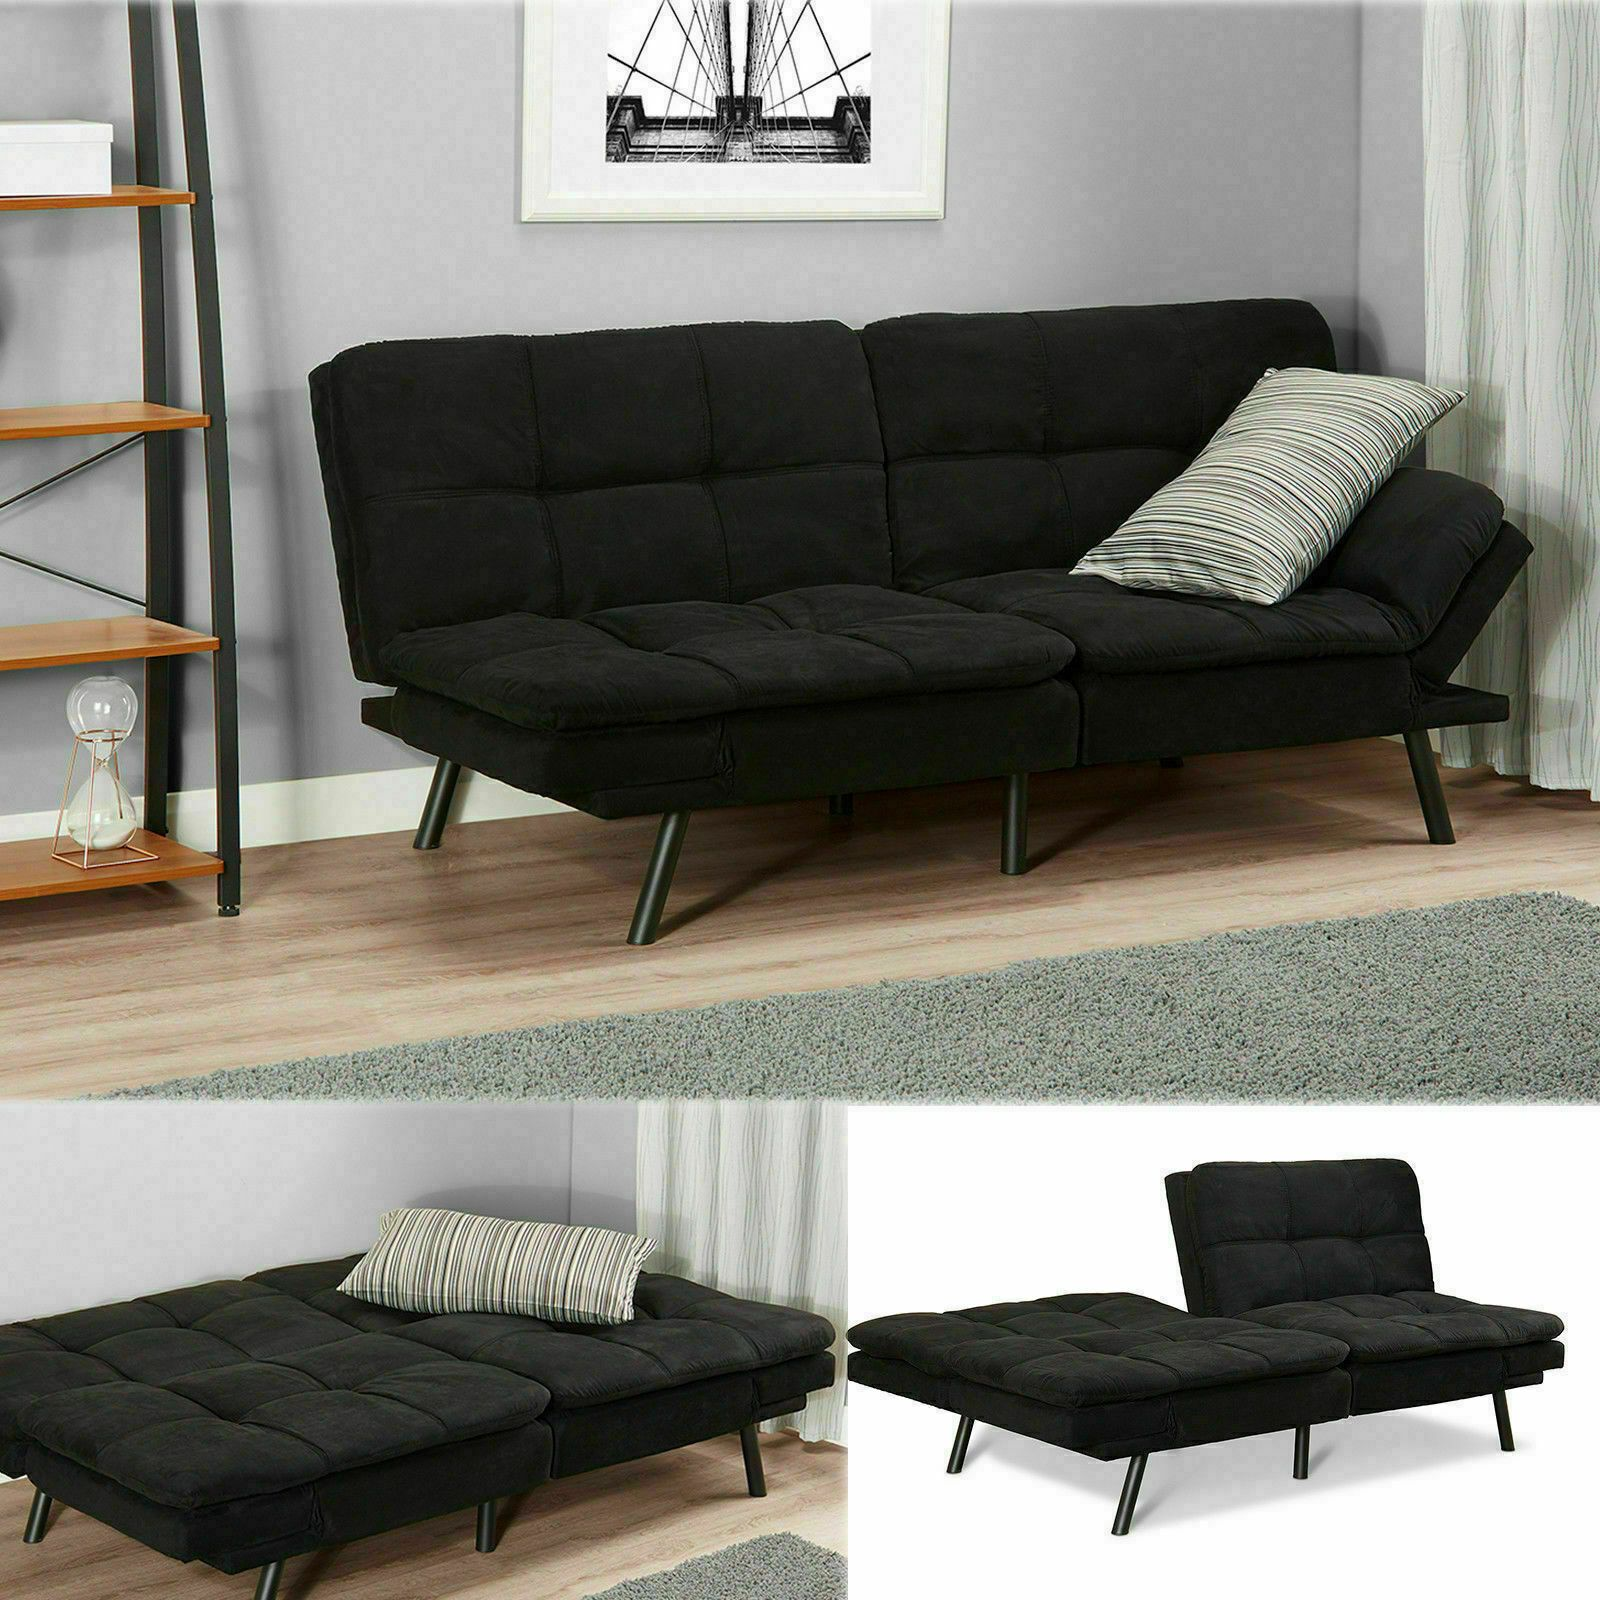 Super Sleeper Sofa Bed Black Suede Convertible Couch Modern Living Gamerscity Chair Design For Home Gamerscityorg